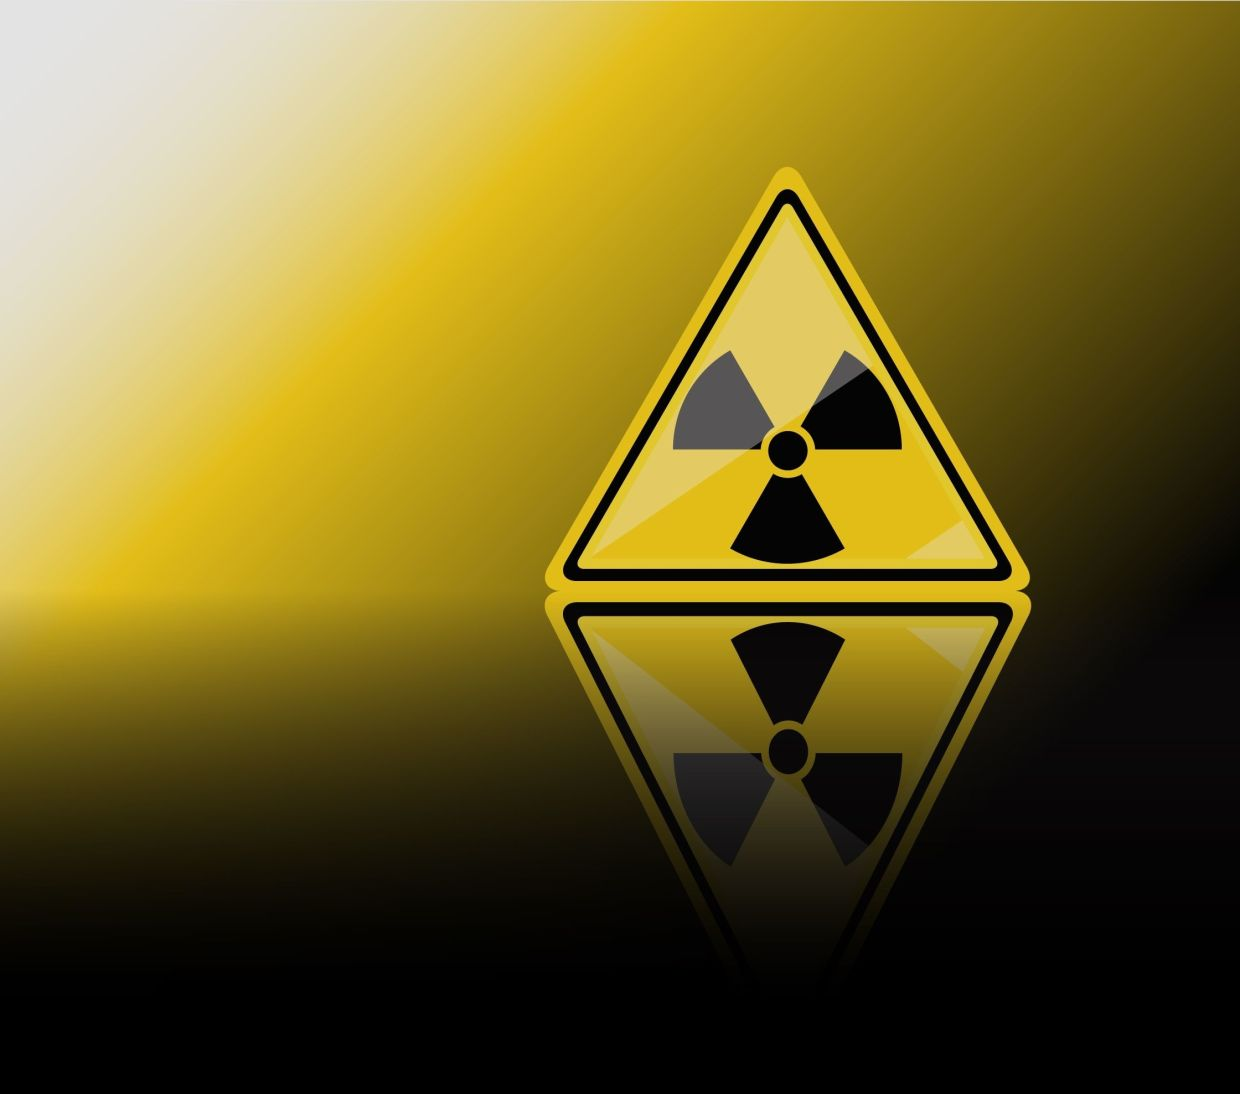 Many people bypass the option of a radiosynvectomy because of their (usually unwarranted) fear of radioactivity. — 123rf.com